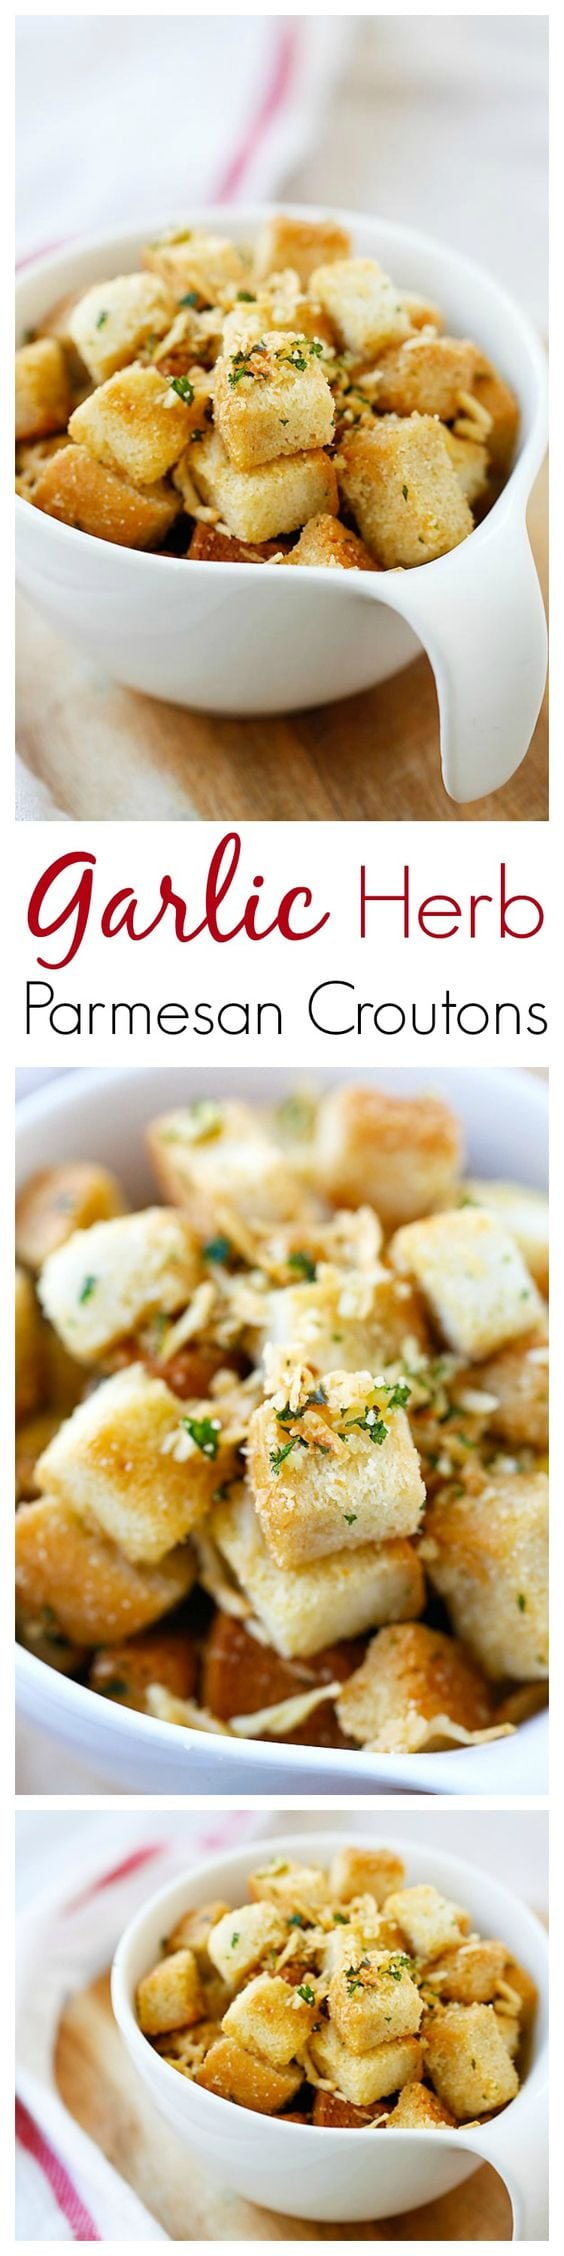 Garlic Herb Parmesan Croutons – amazing and super crispy croutons at home with this easy recipe that takes only 25 mins from prep to dinner table | rasamalaysia.com